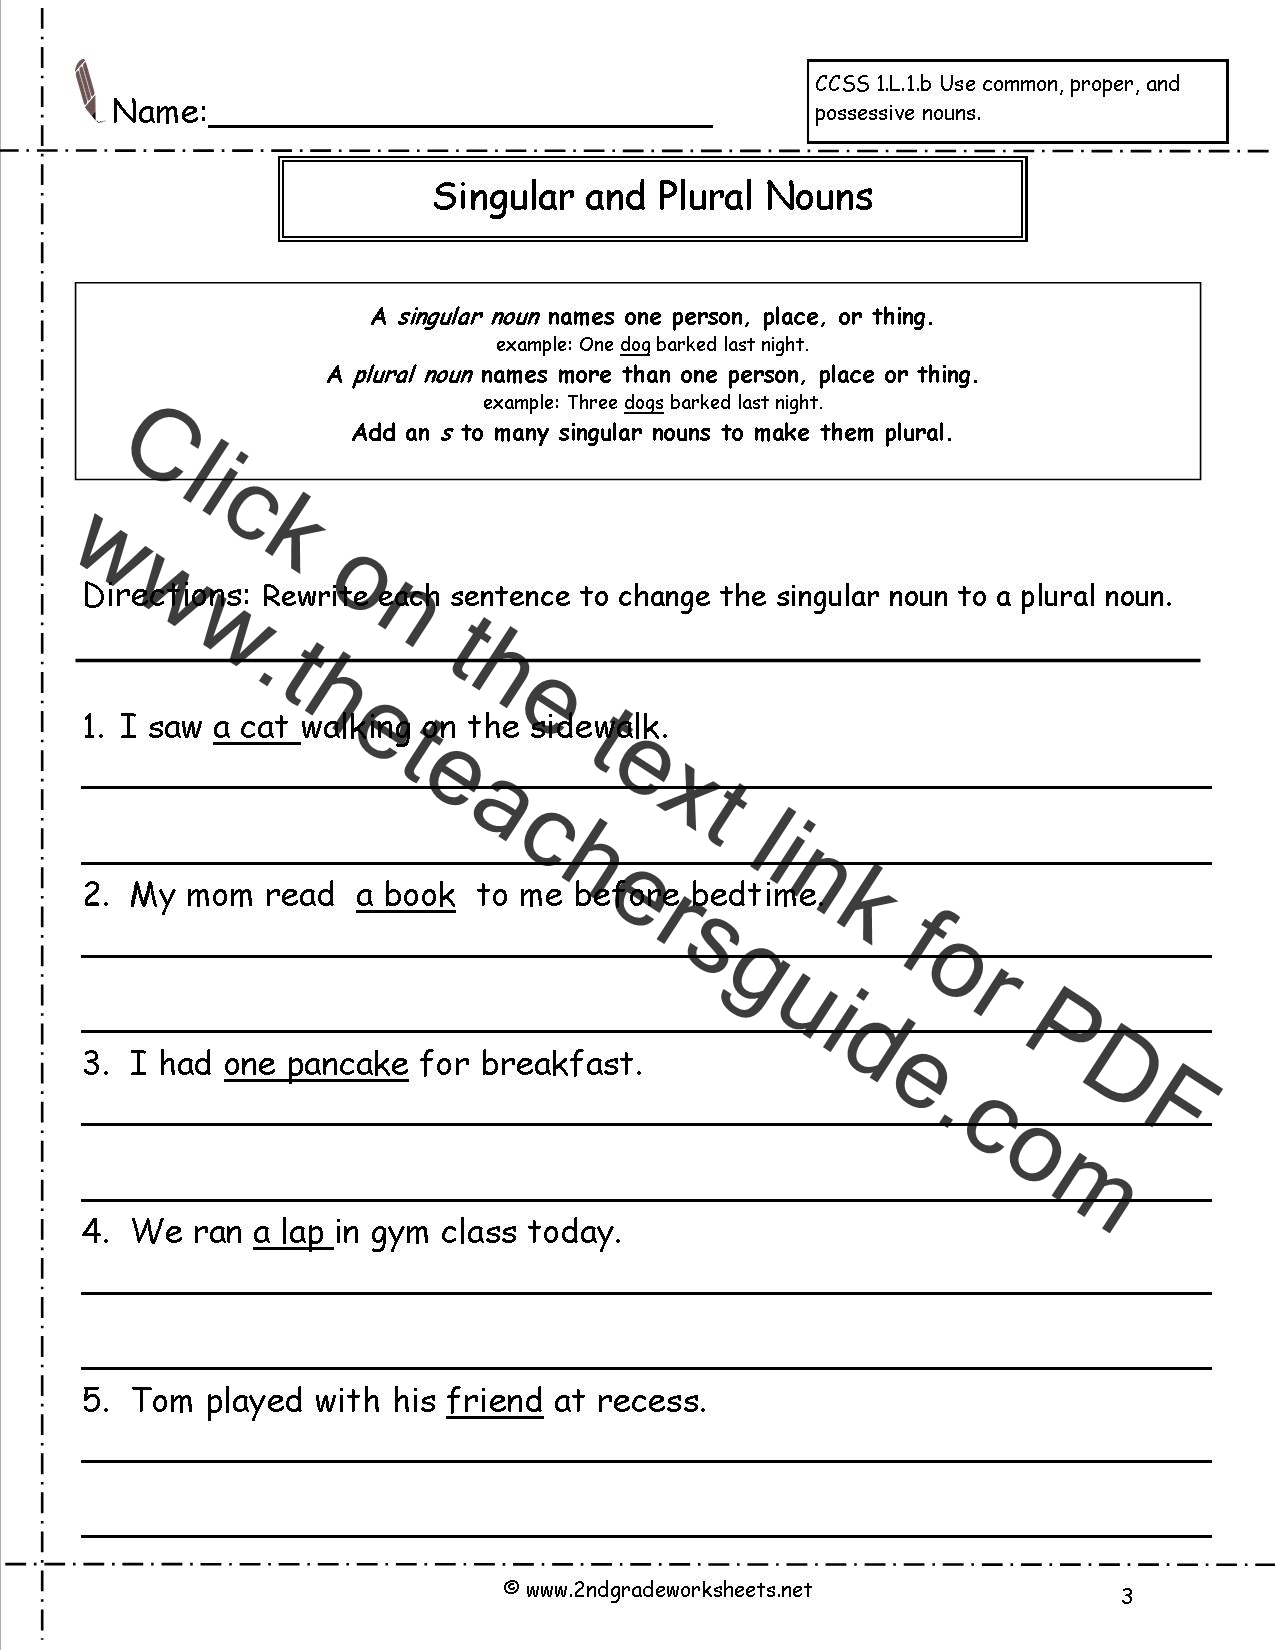 Singular Plural Nouns Worksheets For Grade 3 Possessive And in addition Singular and Plural Nouns Worksheets as well Plural Noun Worksheet S Or Es And Singular Worksheets Grade also Singular And Plural Noun Worksheets Singular And Plural Nouns likewise  furthermore Singular Plural Nouns Worksheets Grade And Free Liry Download besides Singular And Plural Nouns Worksheets For Grade 7 To Singular Plural further  in addition Singular and Plural Nouns Worksheets from The Teacher's Guide besides Singular and Plural Nouns Worksheet   All ESL likewise Singular   Plural Noun Worksheet   ESL worksheet by wais1 further Singular and Plural Nouns Worksheets from The Teacher's Guide together with Singular and Plural Nouns Worksheets furthermore singular and plural worksheets for kindergarten additionally Singular Plural Nouns Worksheets     Singular and Plural Nouns besides singular plural nouns worksheets – trungcollection. on singular and plural nouns worksheets